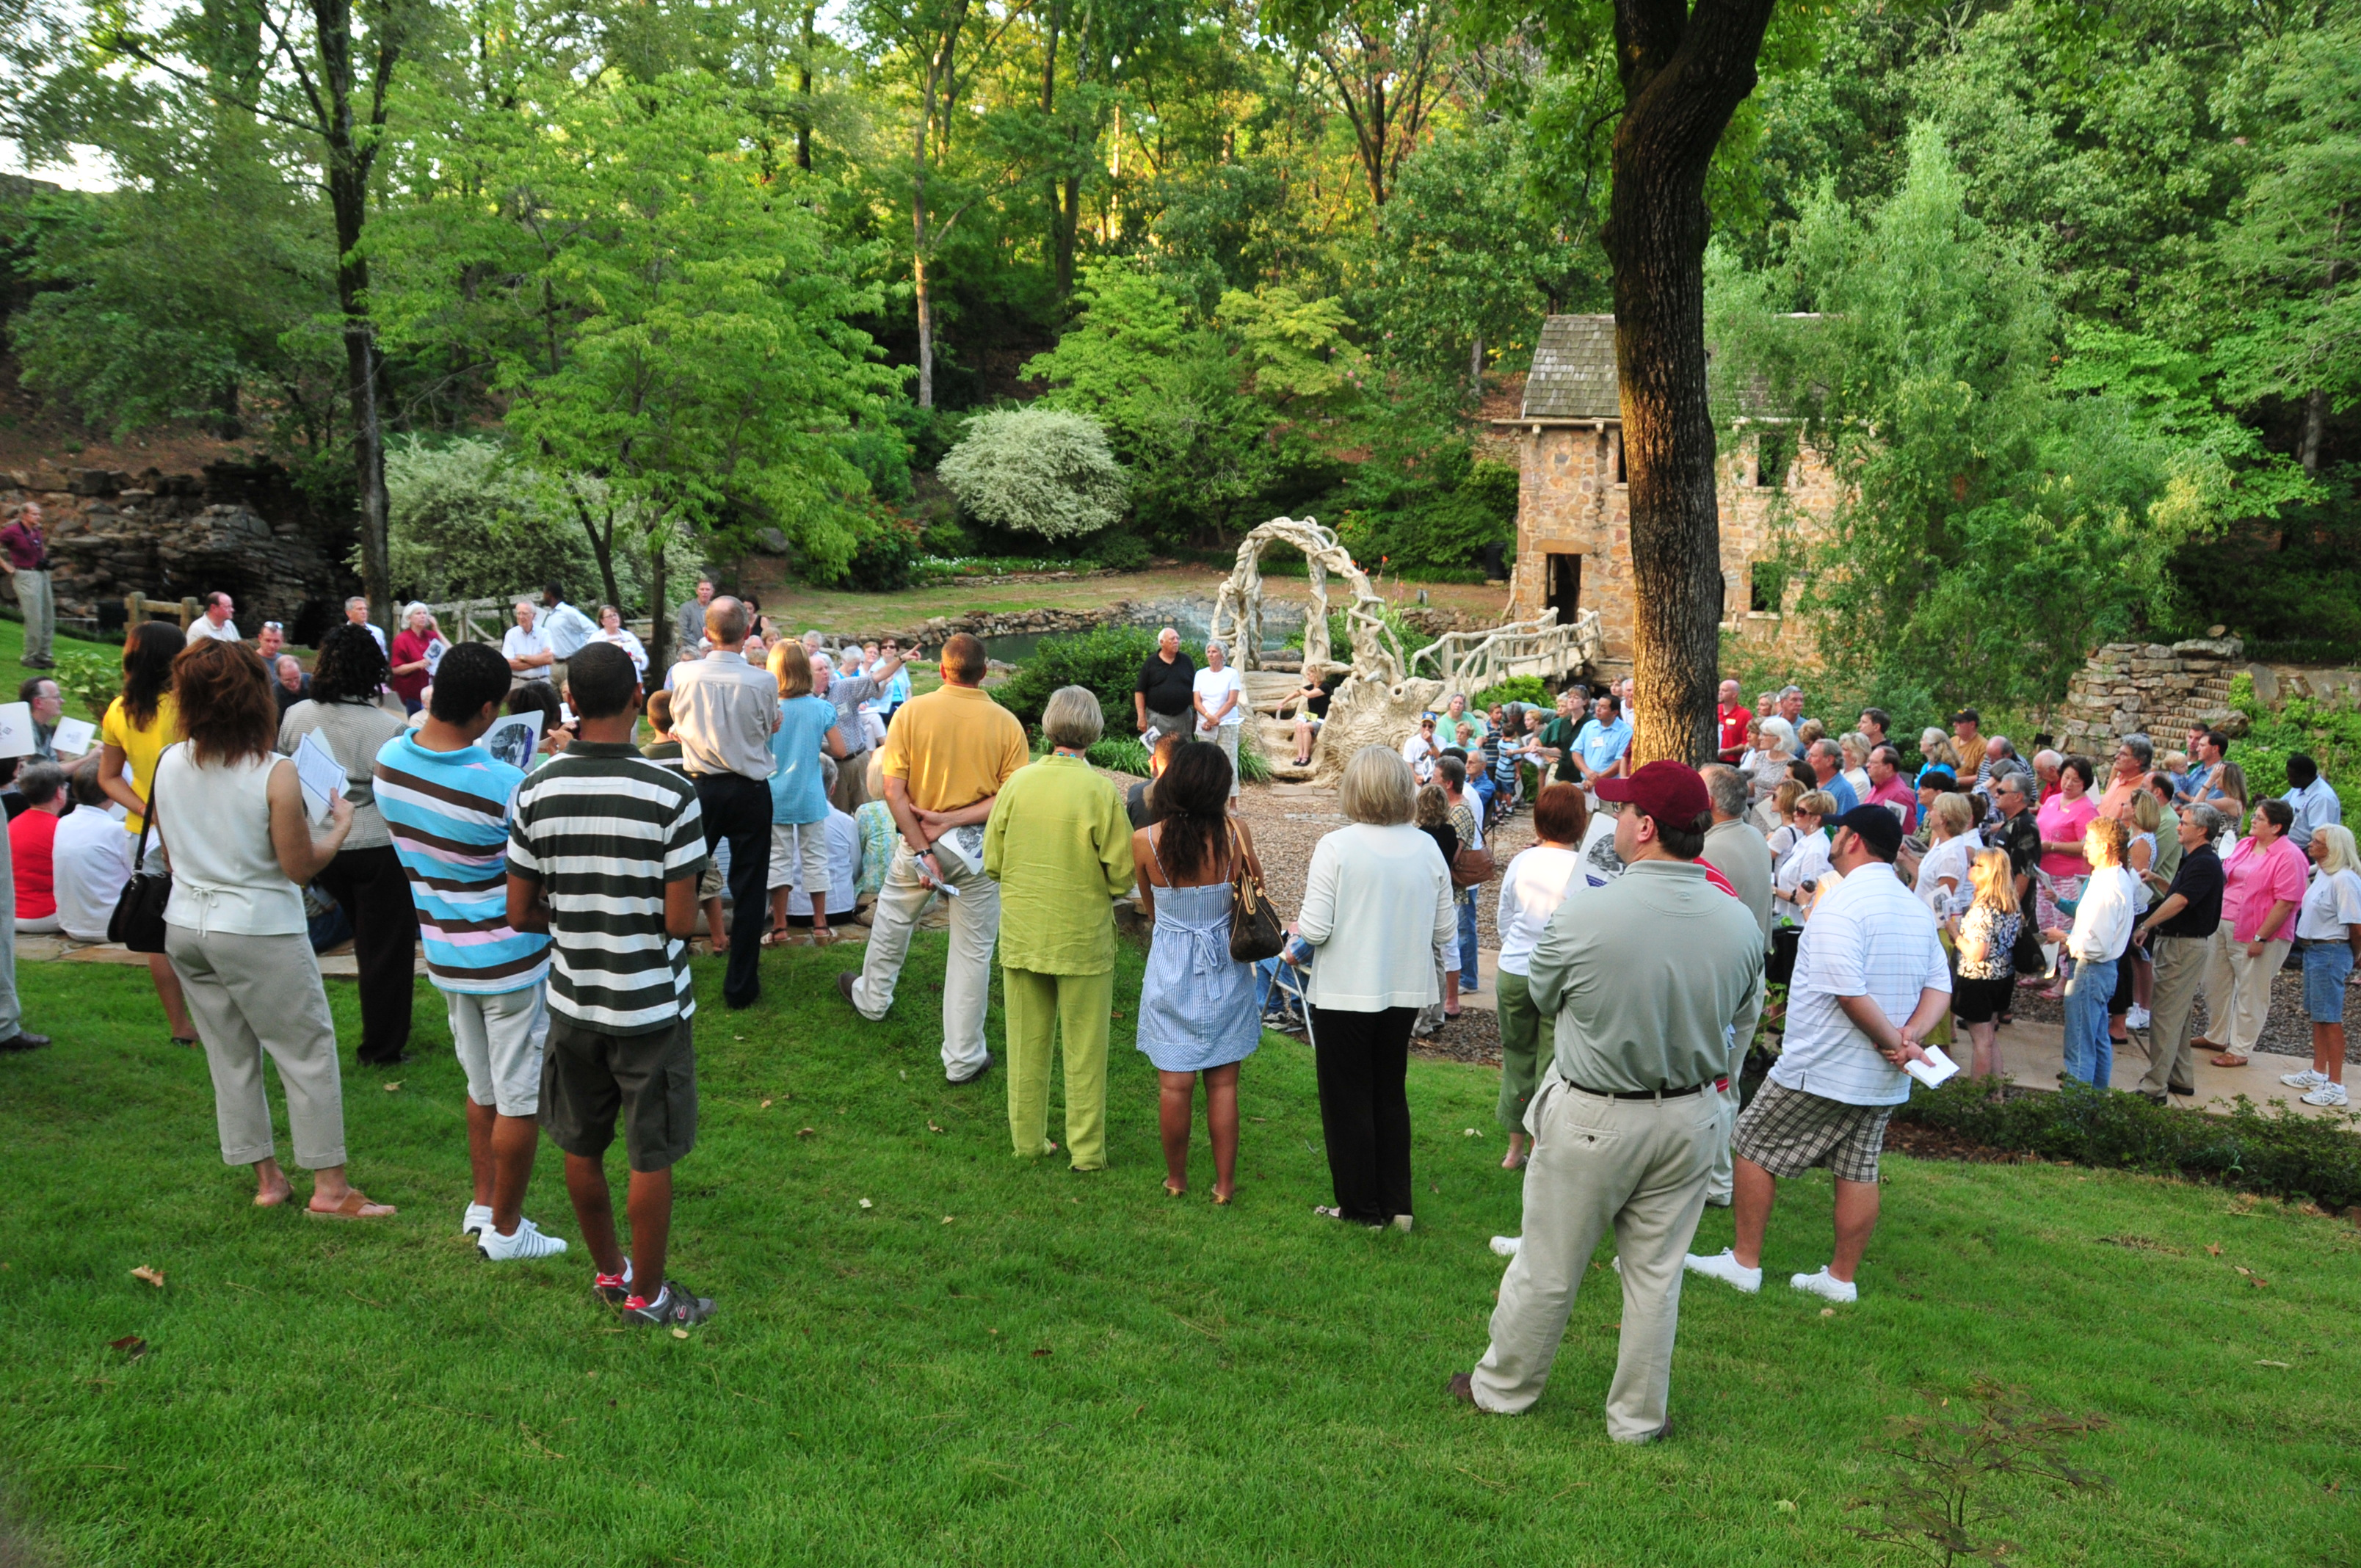 Guests celebrate the rededication of the Old Mill in T.R. Pugh Memorial Park in North Little Rock